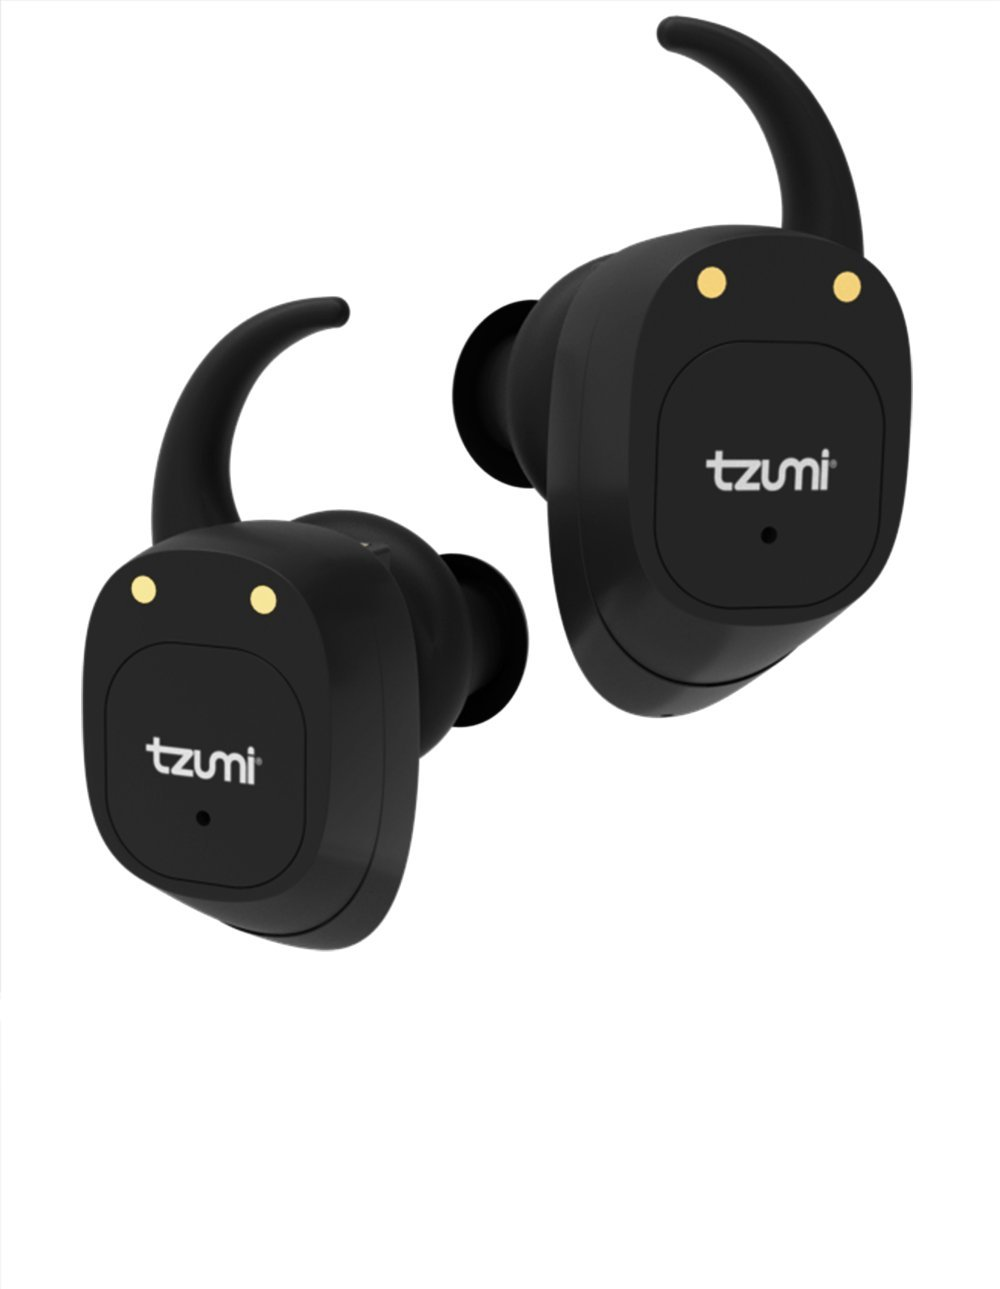 Tzumi ProBuds True Wireless Earbuds - Wireless Stereo Earbuds With Built-In Microphone and Charging Case – Bluetooth 4.2 Compatible with all iPhone and Android Devices